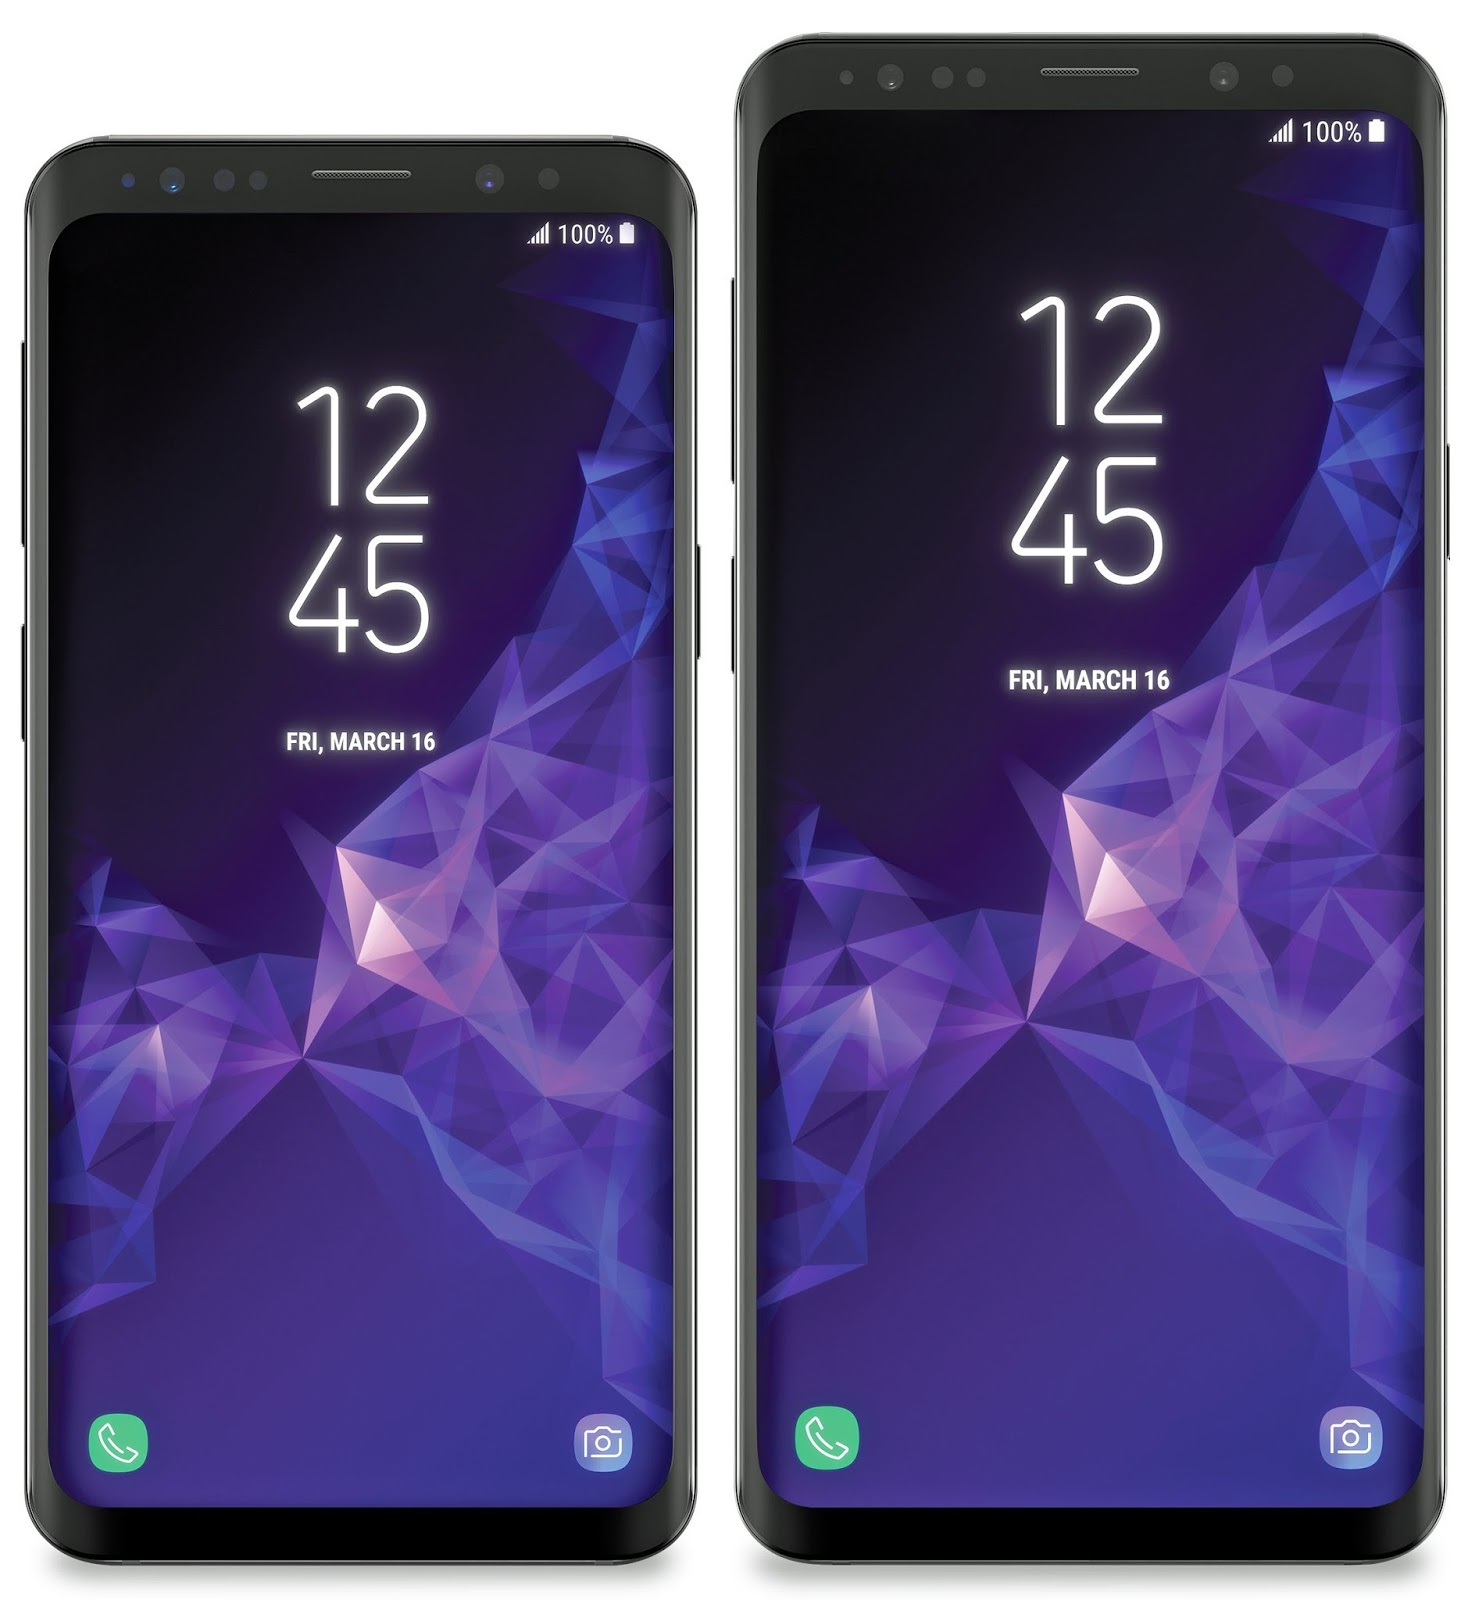 The Samsung Galaxy S9 and s9 plus only front view, with large visible bezels